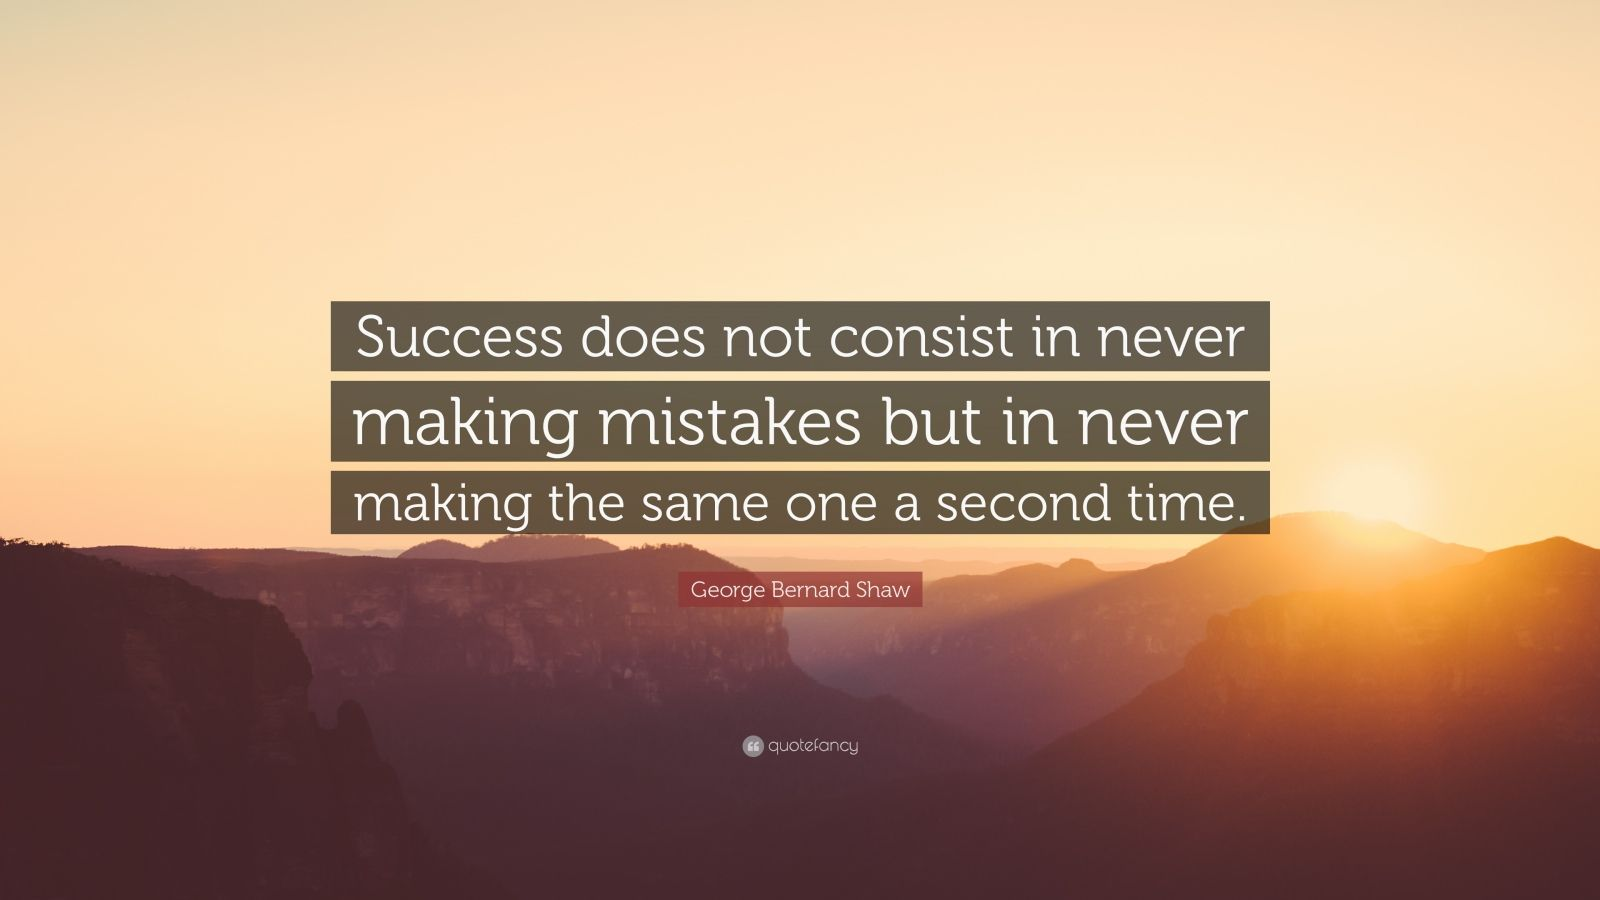 Inspiring Relationship Quotes Wallpaper George Bernard Shaw Quote Success Does Not Consist In